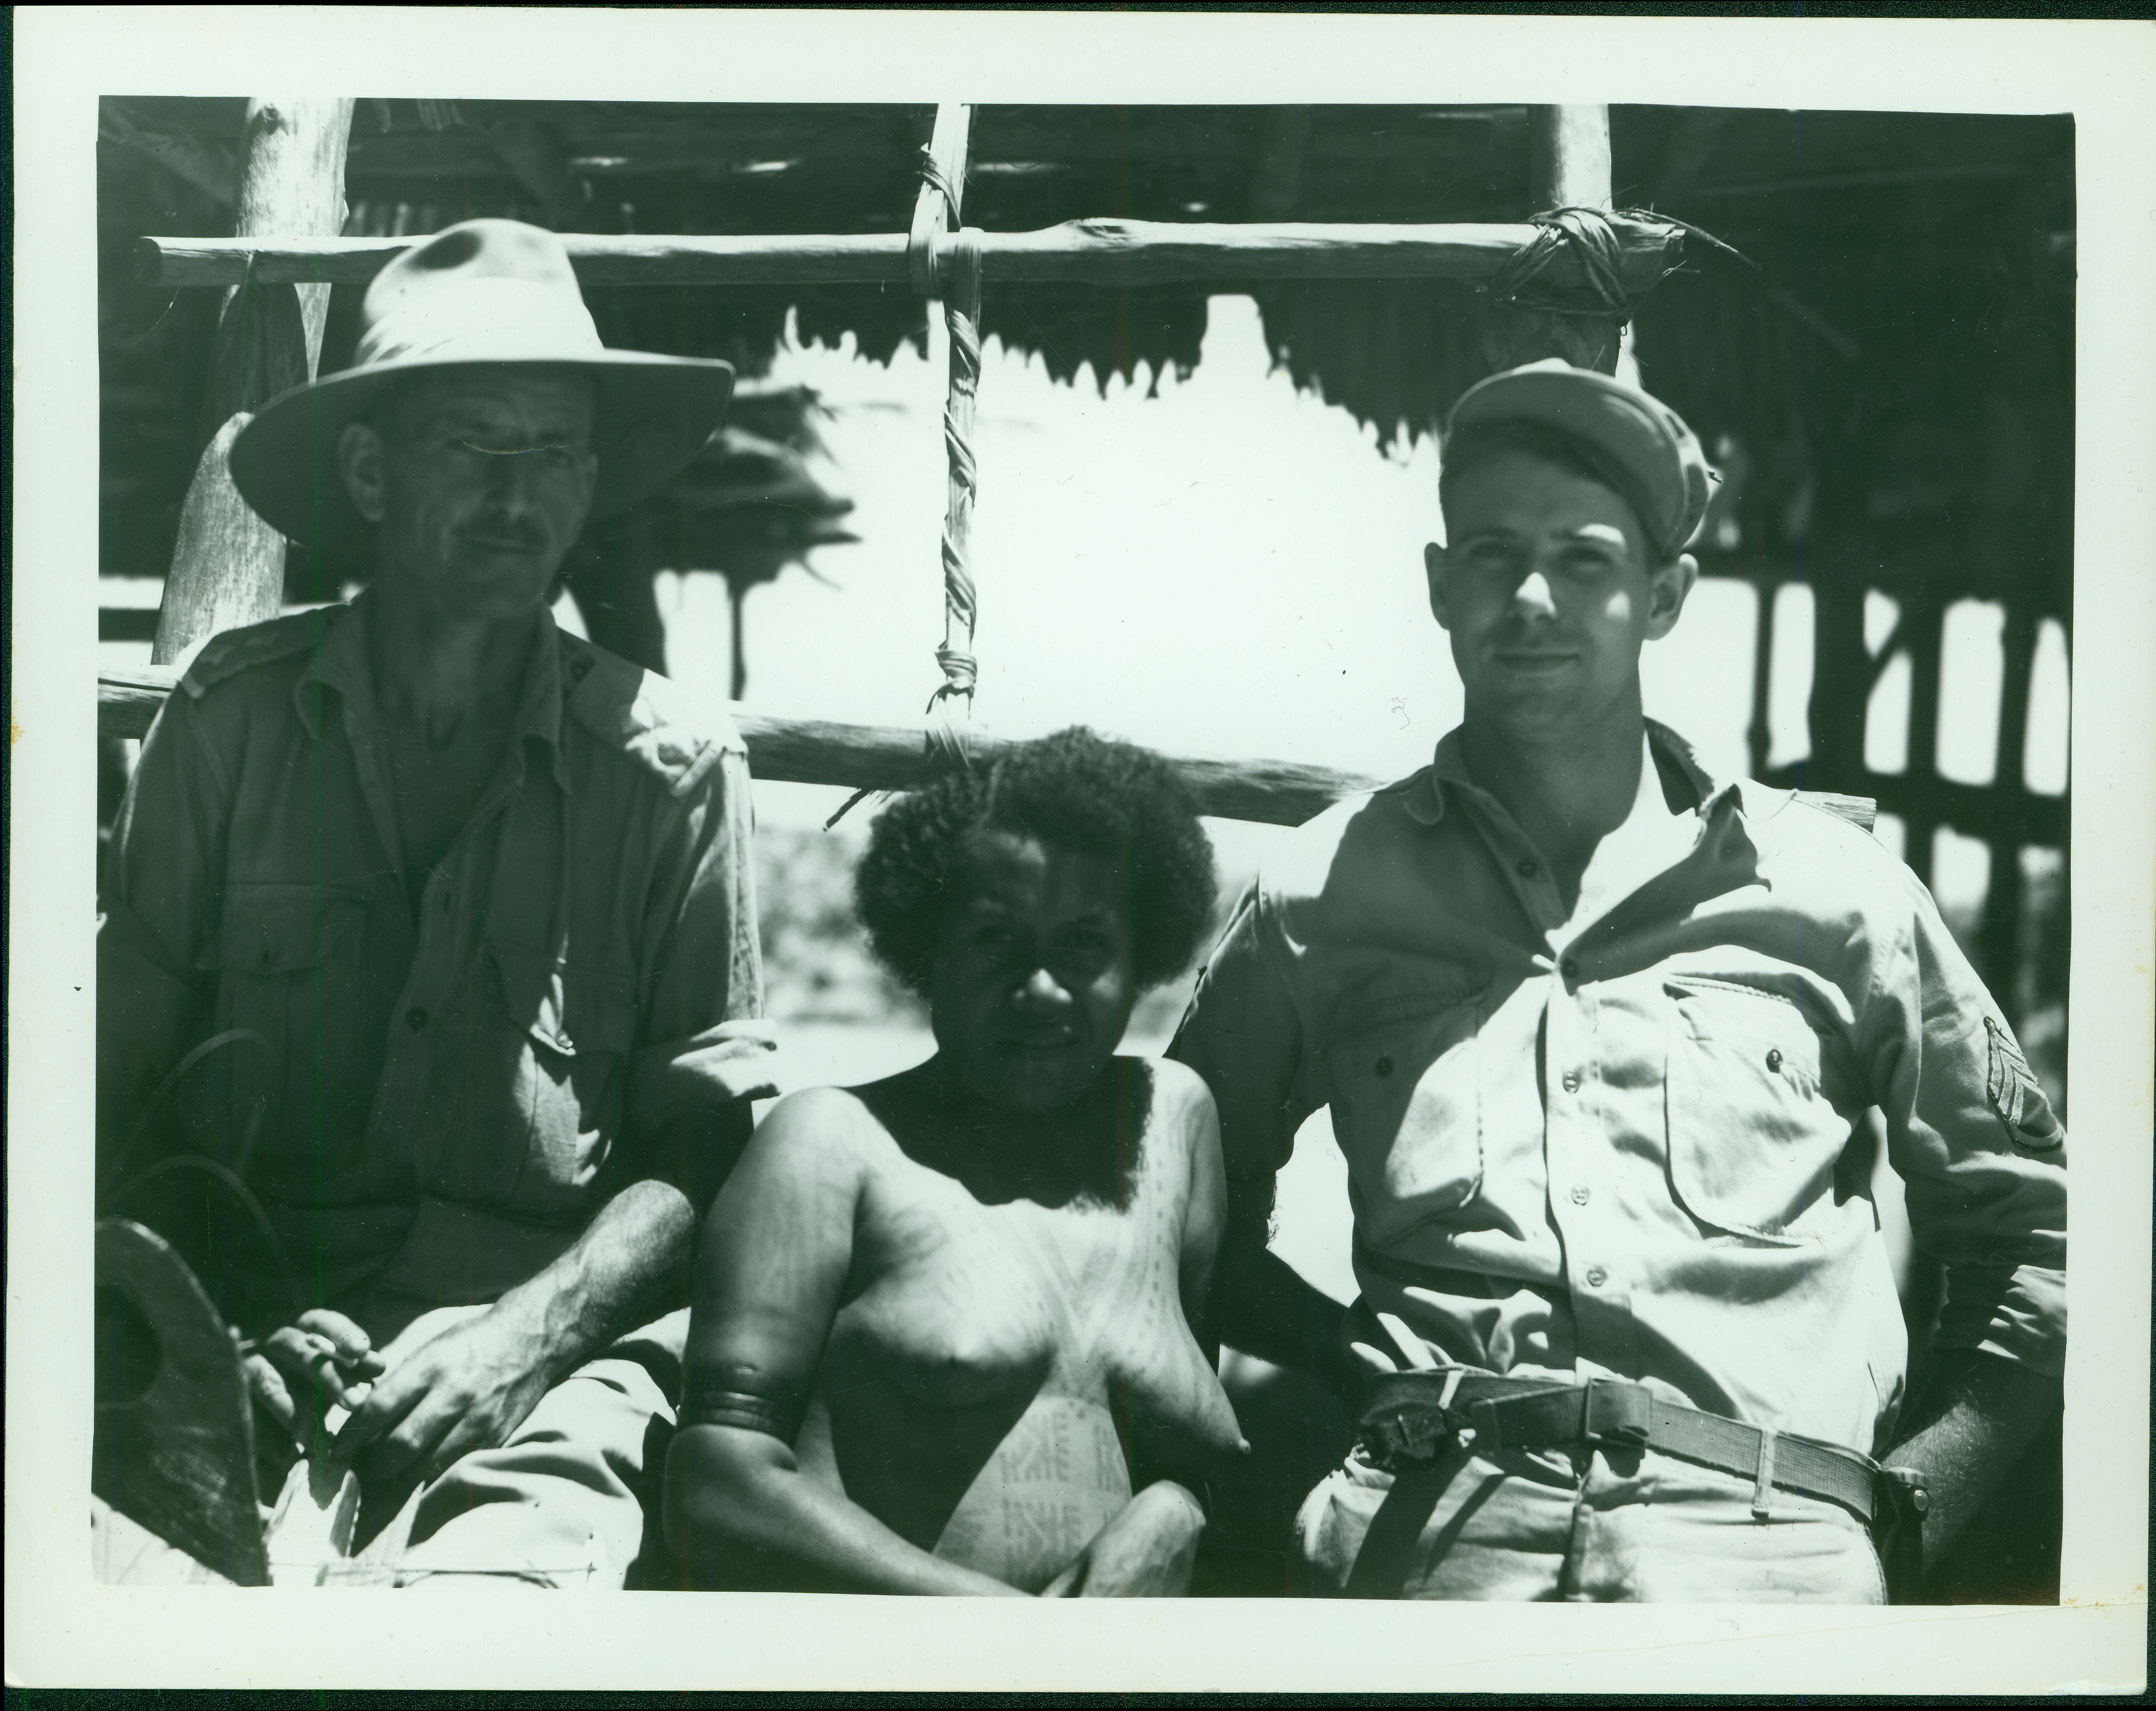 Merchant with Australian Lieutenant pose with native woman [RG5841-1-18]